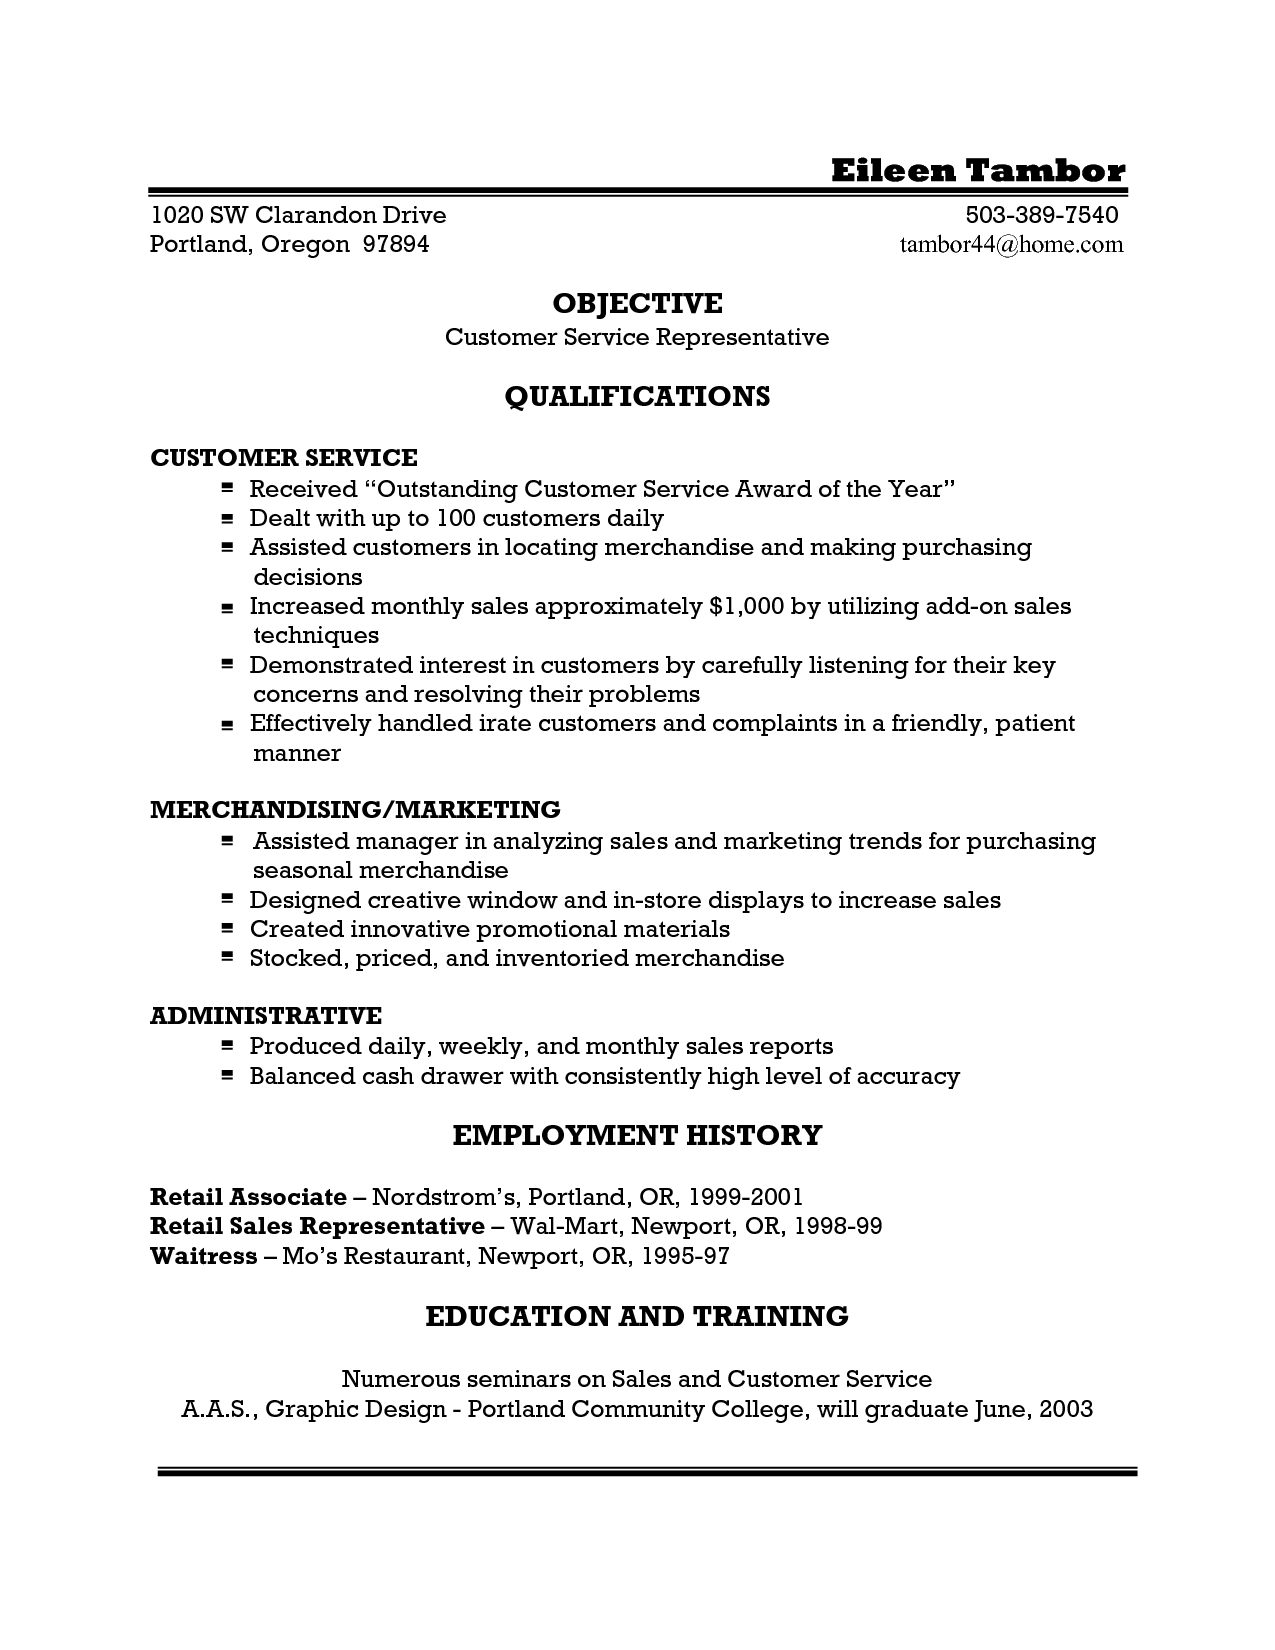 Restaurant Waiter Resume Sample - Resume Sample